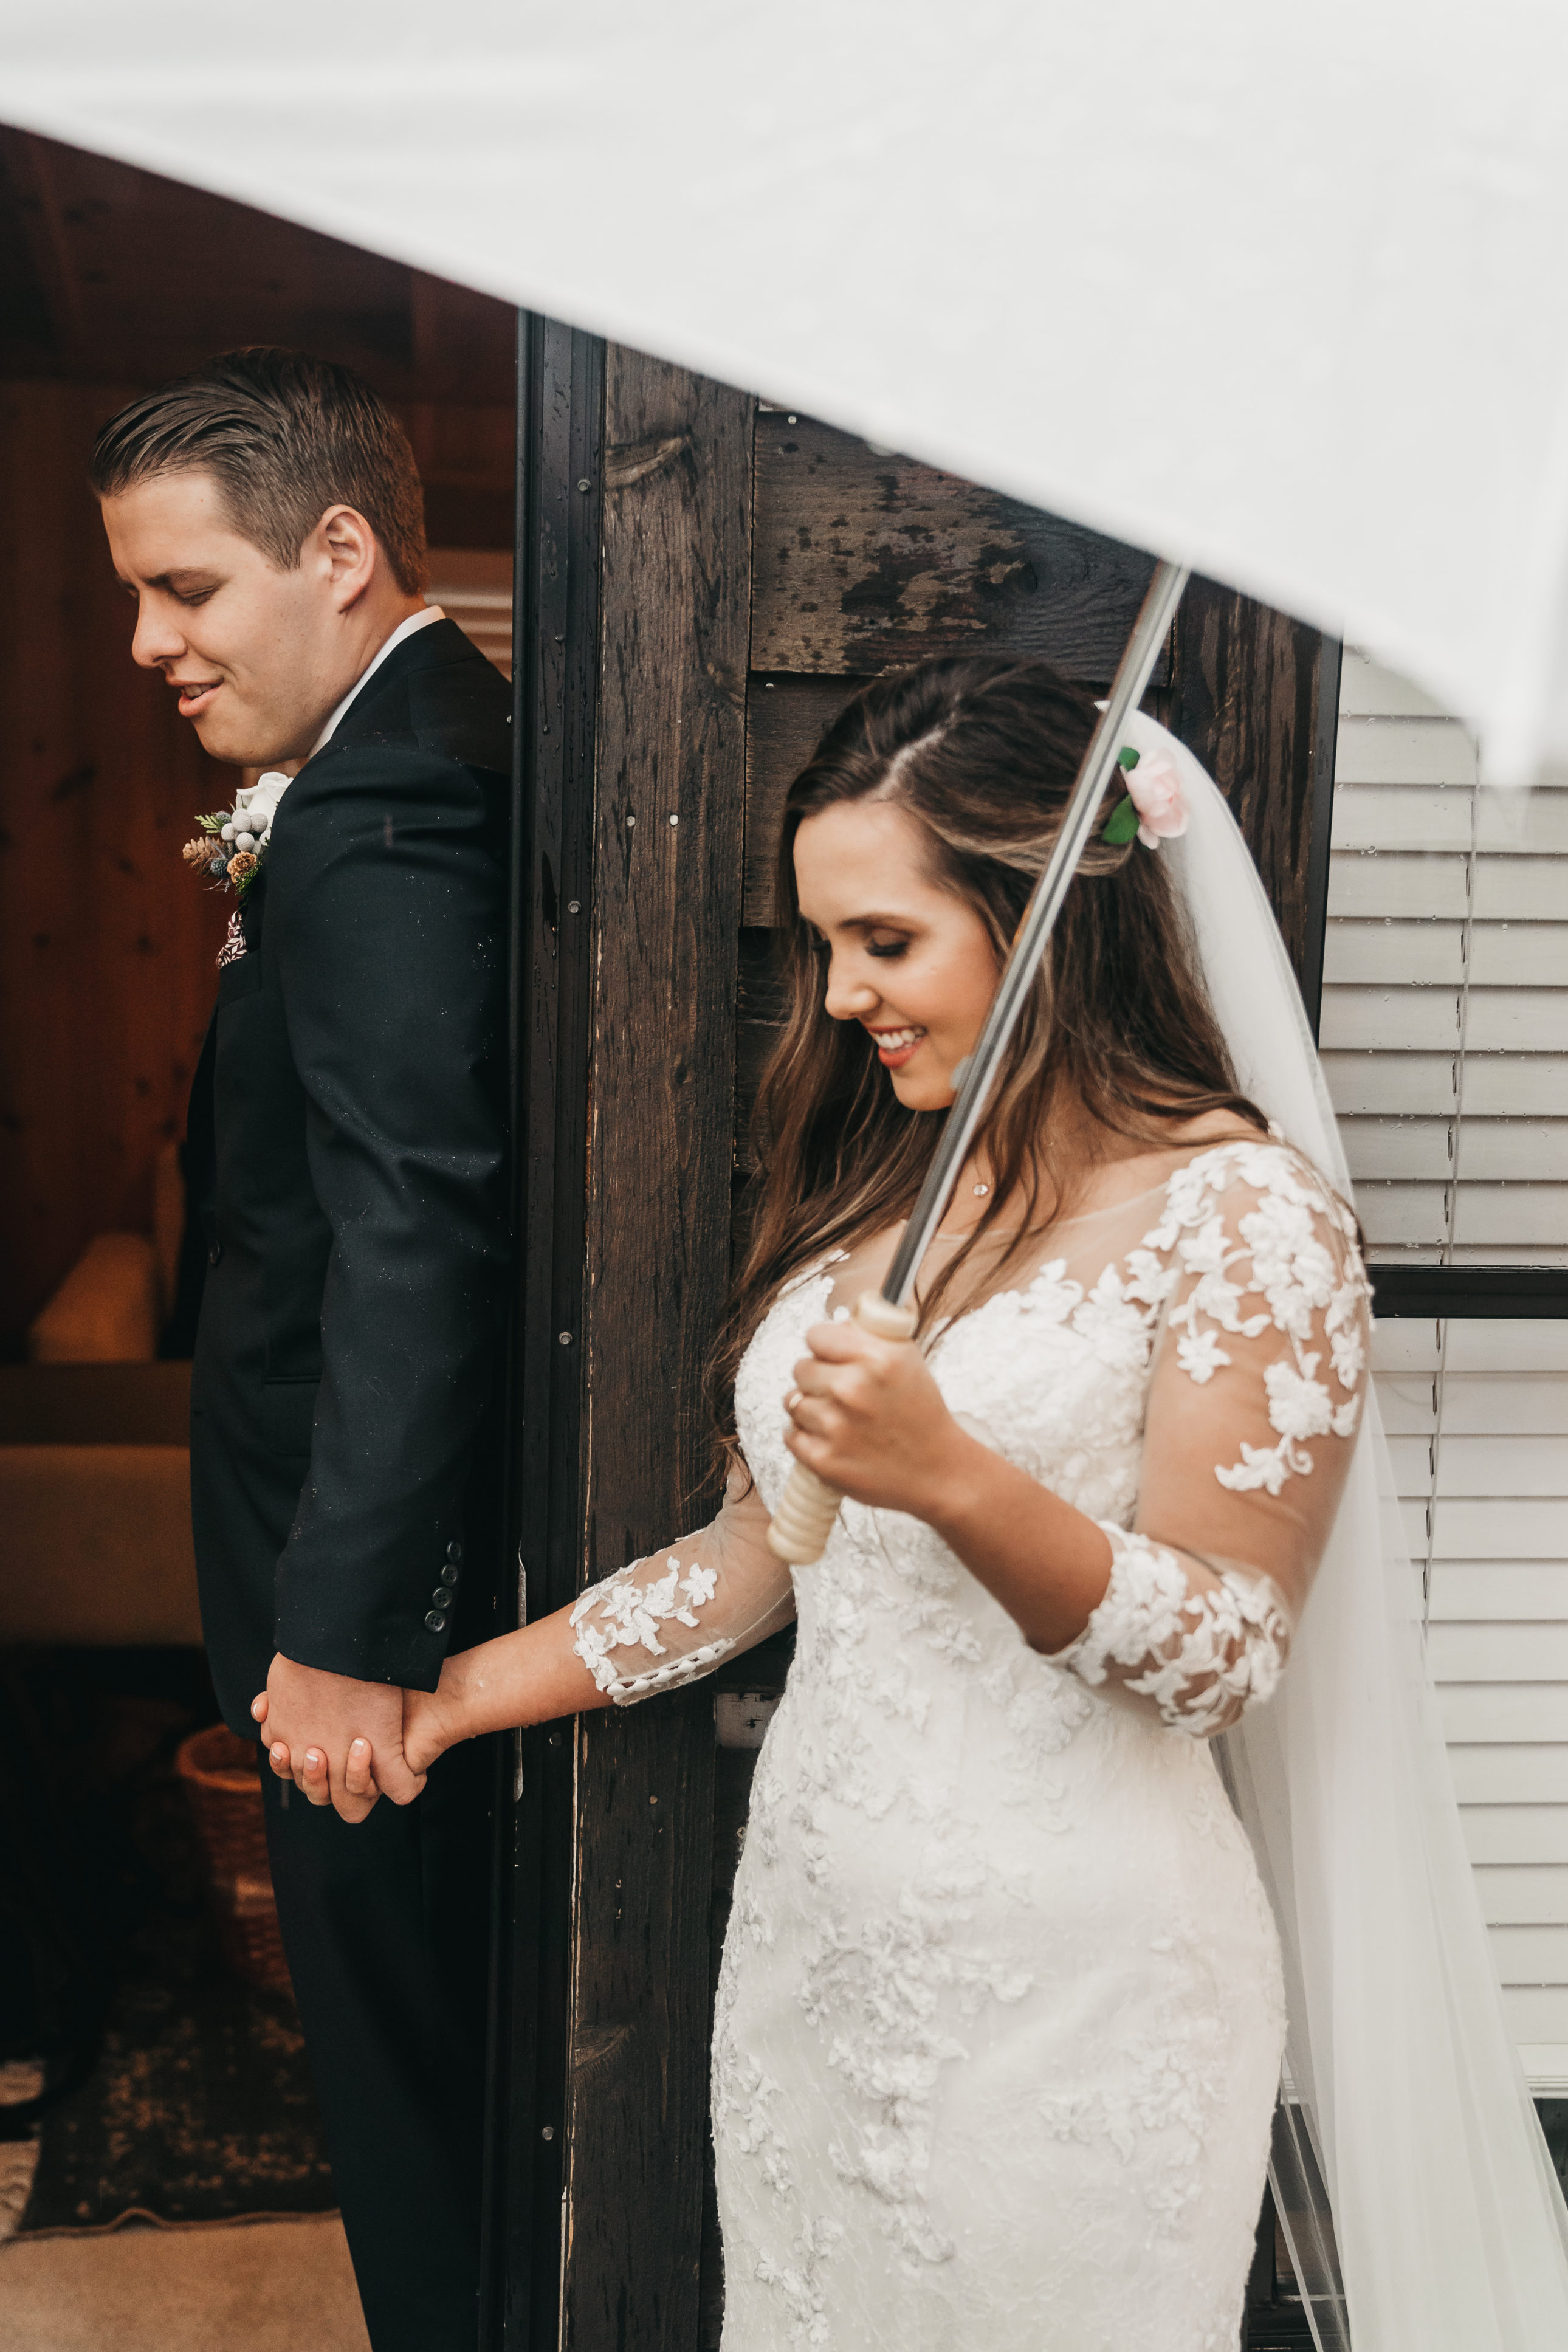 24053281ee1a ... wedding dresses are priced just $399 – $2000 and sold in an upscale  boutique setting with friendly, no-pressure stylists. Finally, you don't  have to ...